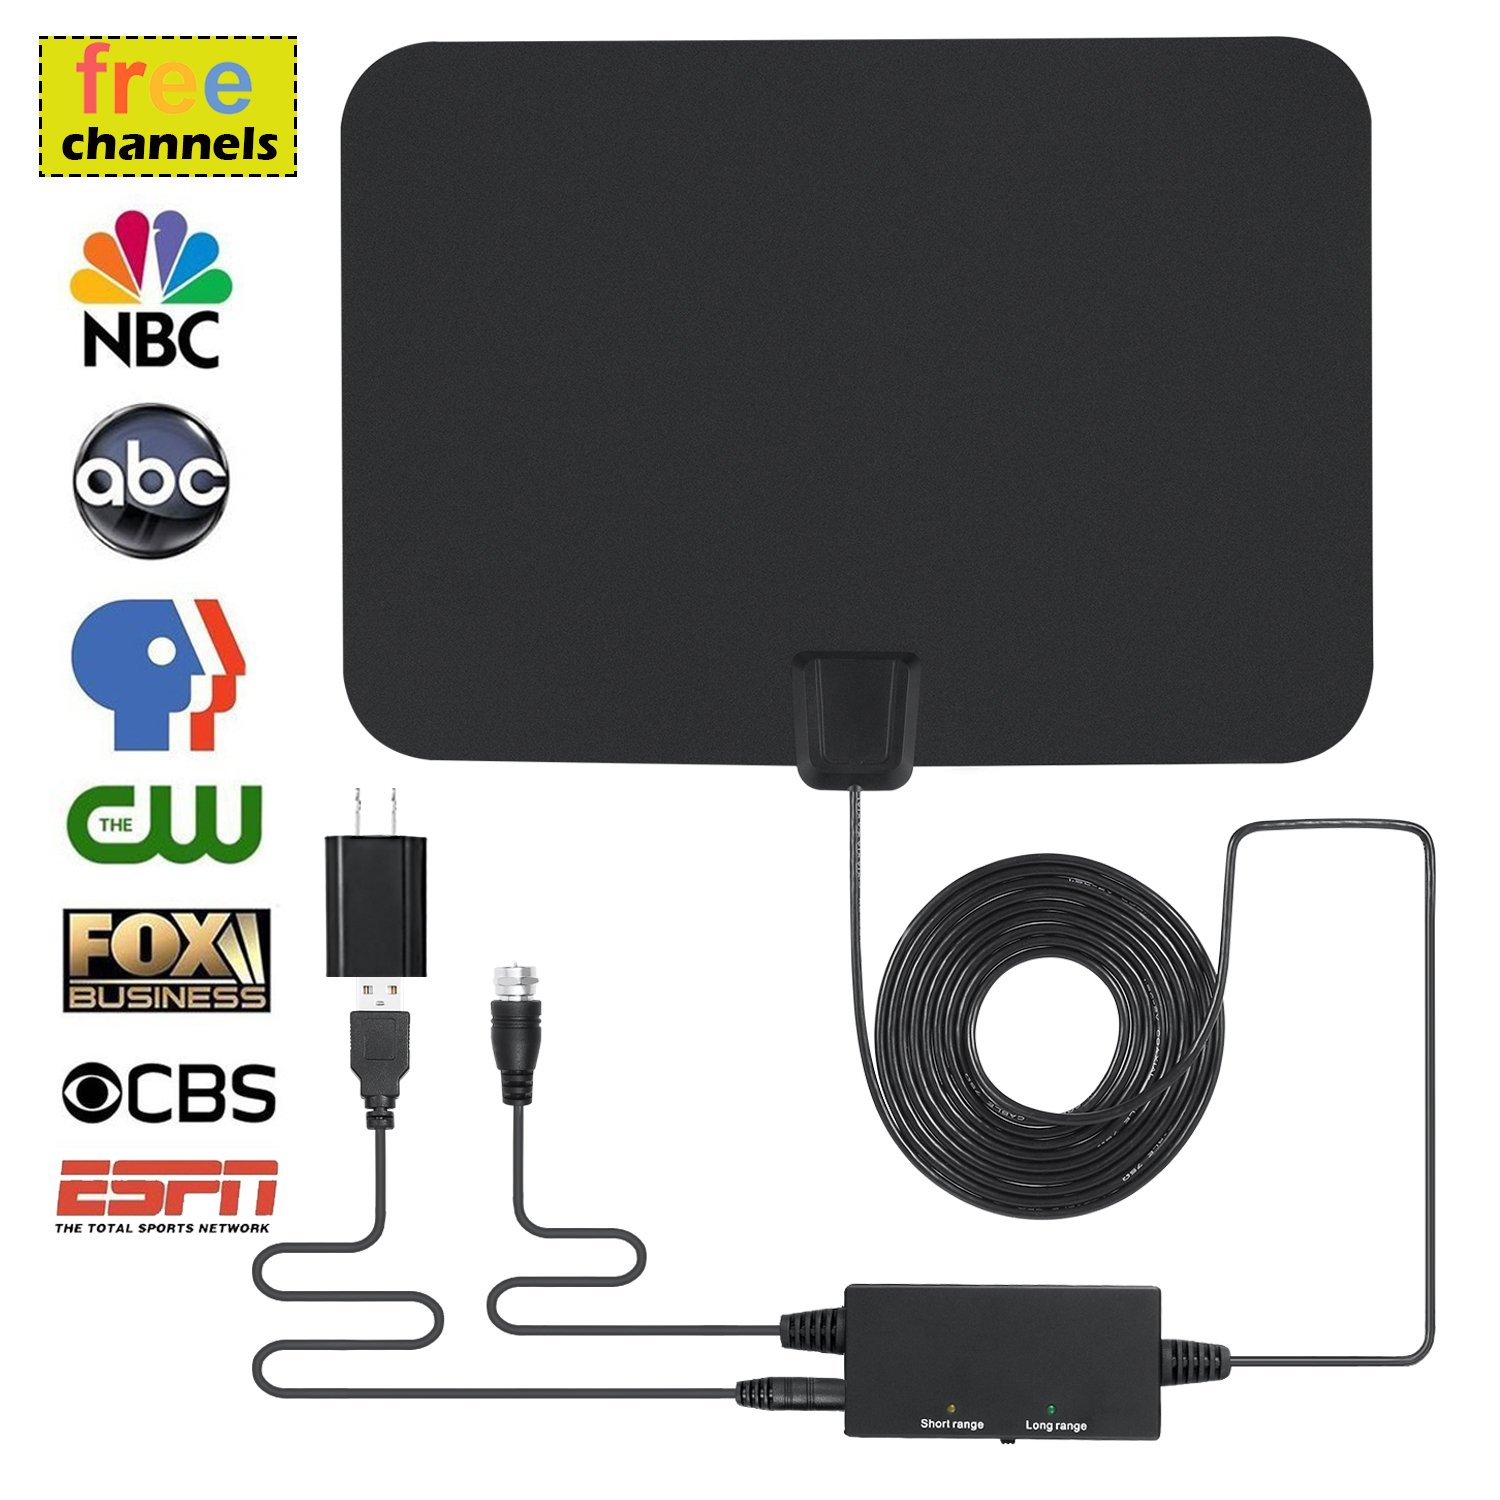 Digital TV Antenna, Indoor Amplified HDTV Antenna 60 Miles Range with Integrated Amplifier Signal Booster (Built-in Short/Long Range Switch), USB Powered 16.5Ft Coax Cable - 4K/HD/VHF/UHF Freeview by UPaitou